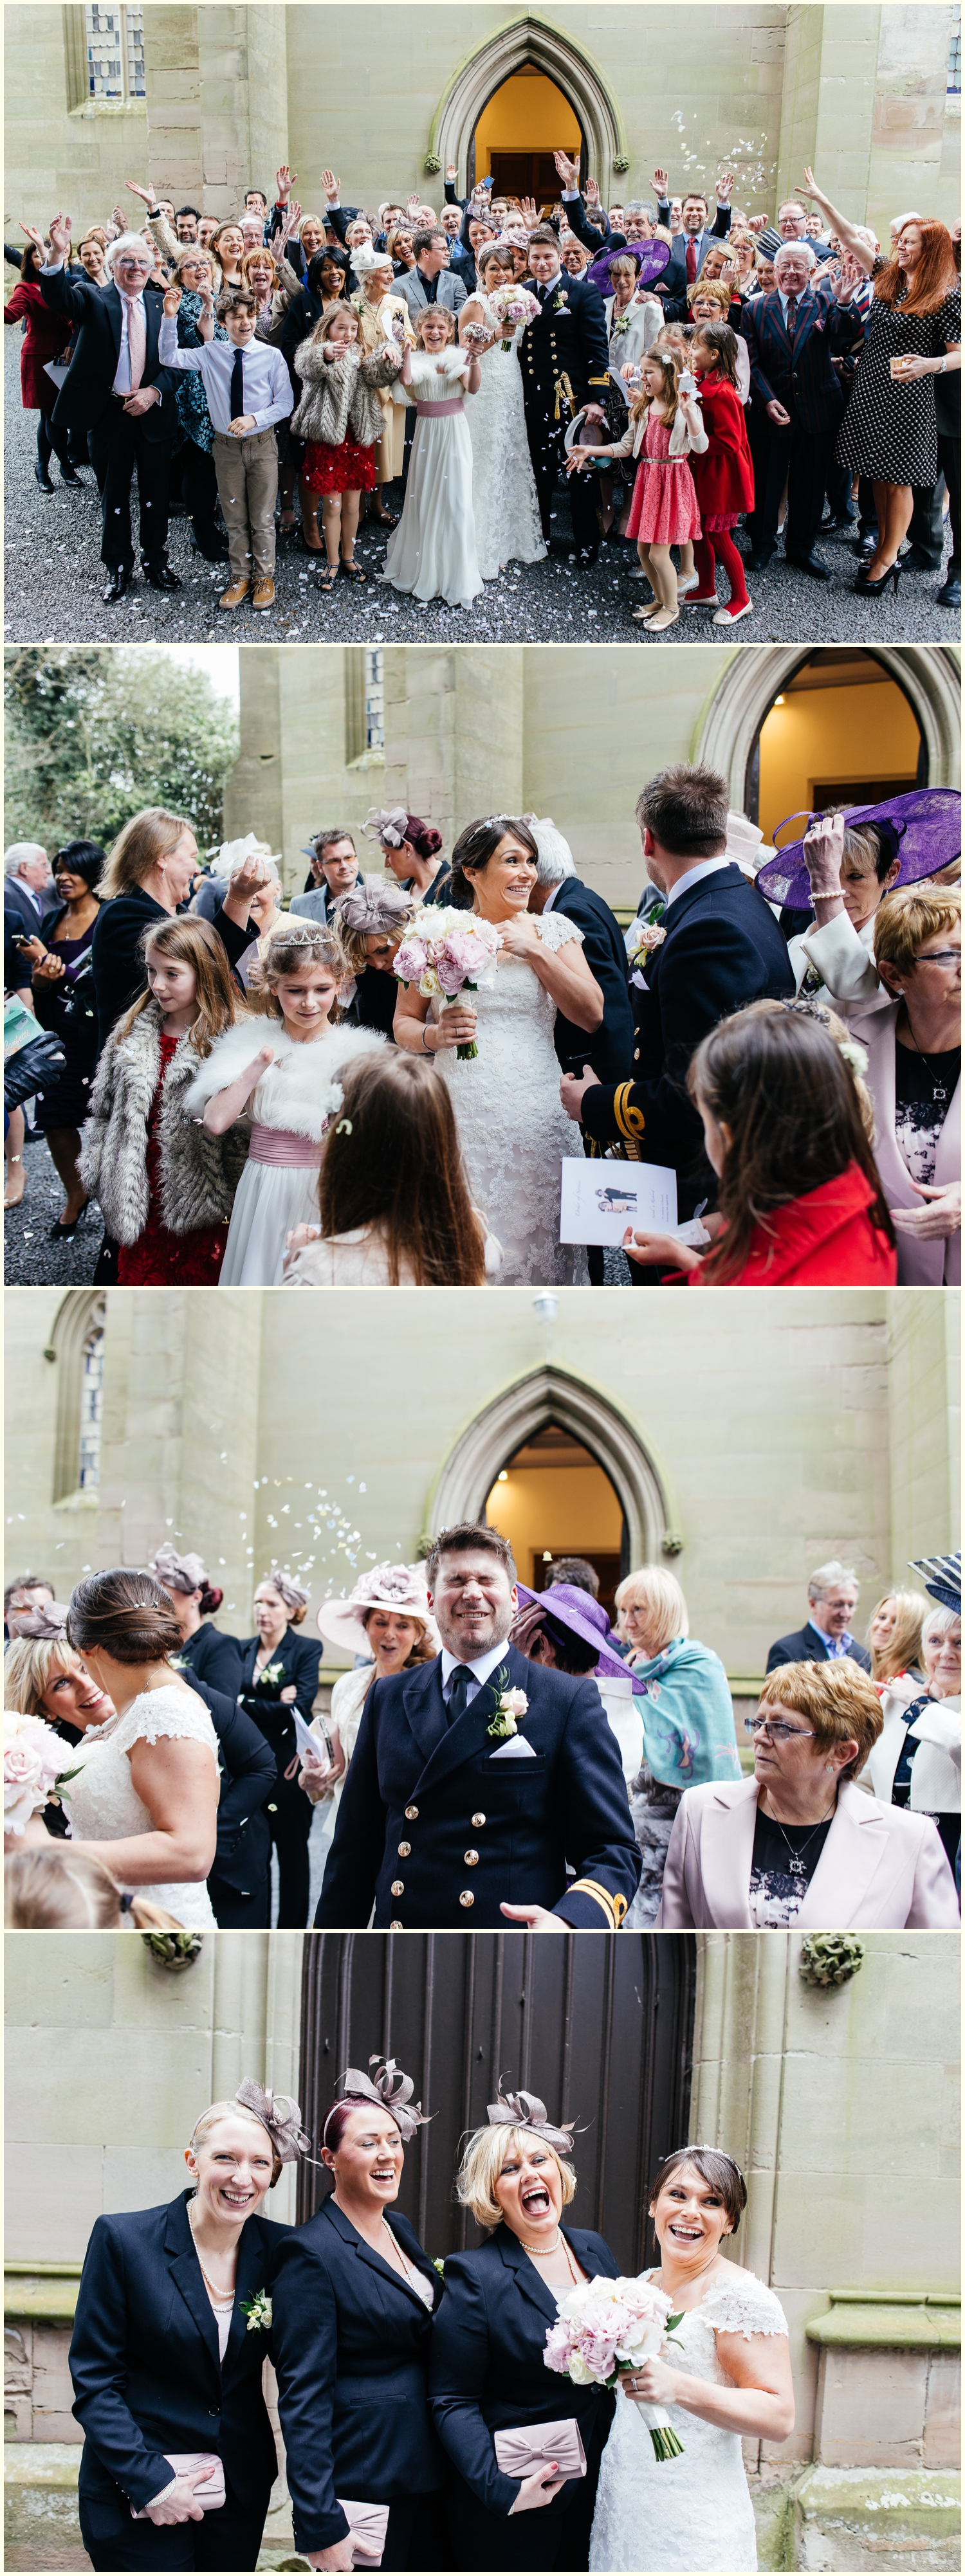 Nikki_Cooper_Photography_Rich&Sarah_Wedding_Photos_Crown_and_Sandys_Ombersley_Worcester_1028.jpg